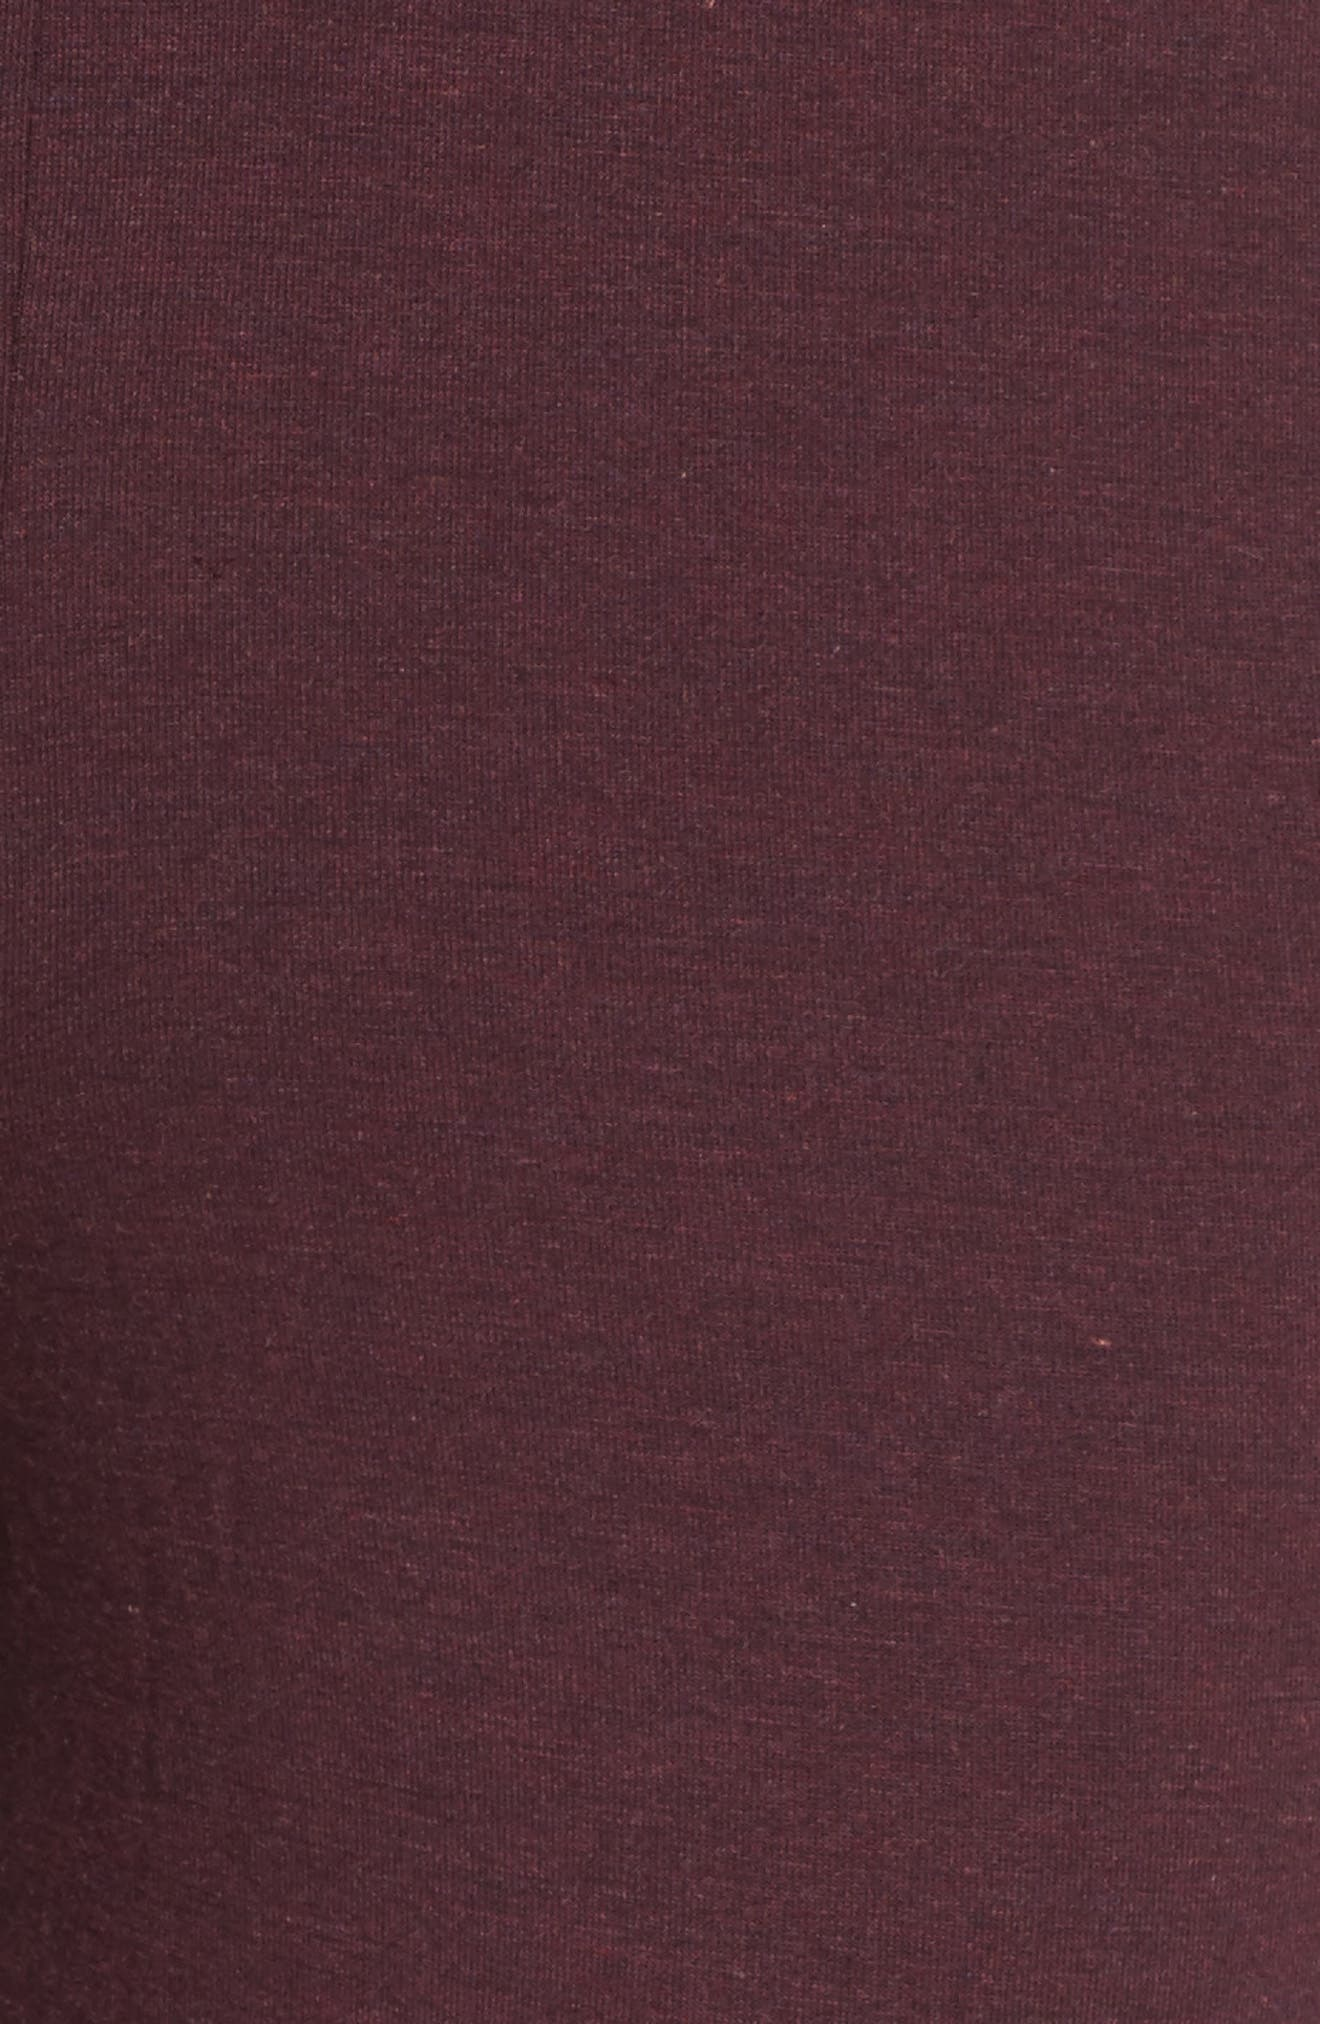 Jersey Lounge Pants,                             Alternate thumbnail 8, color,                             Burgundy